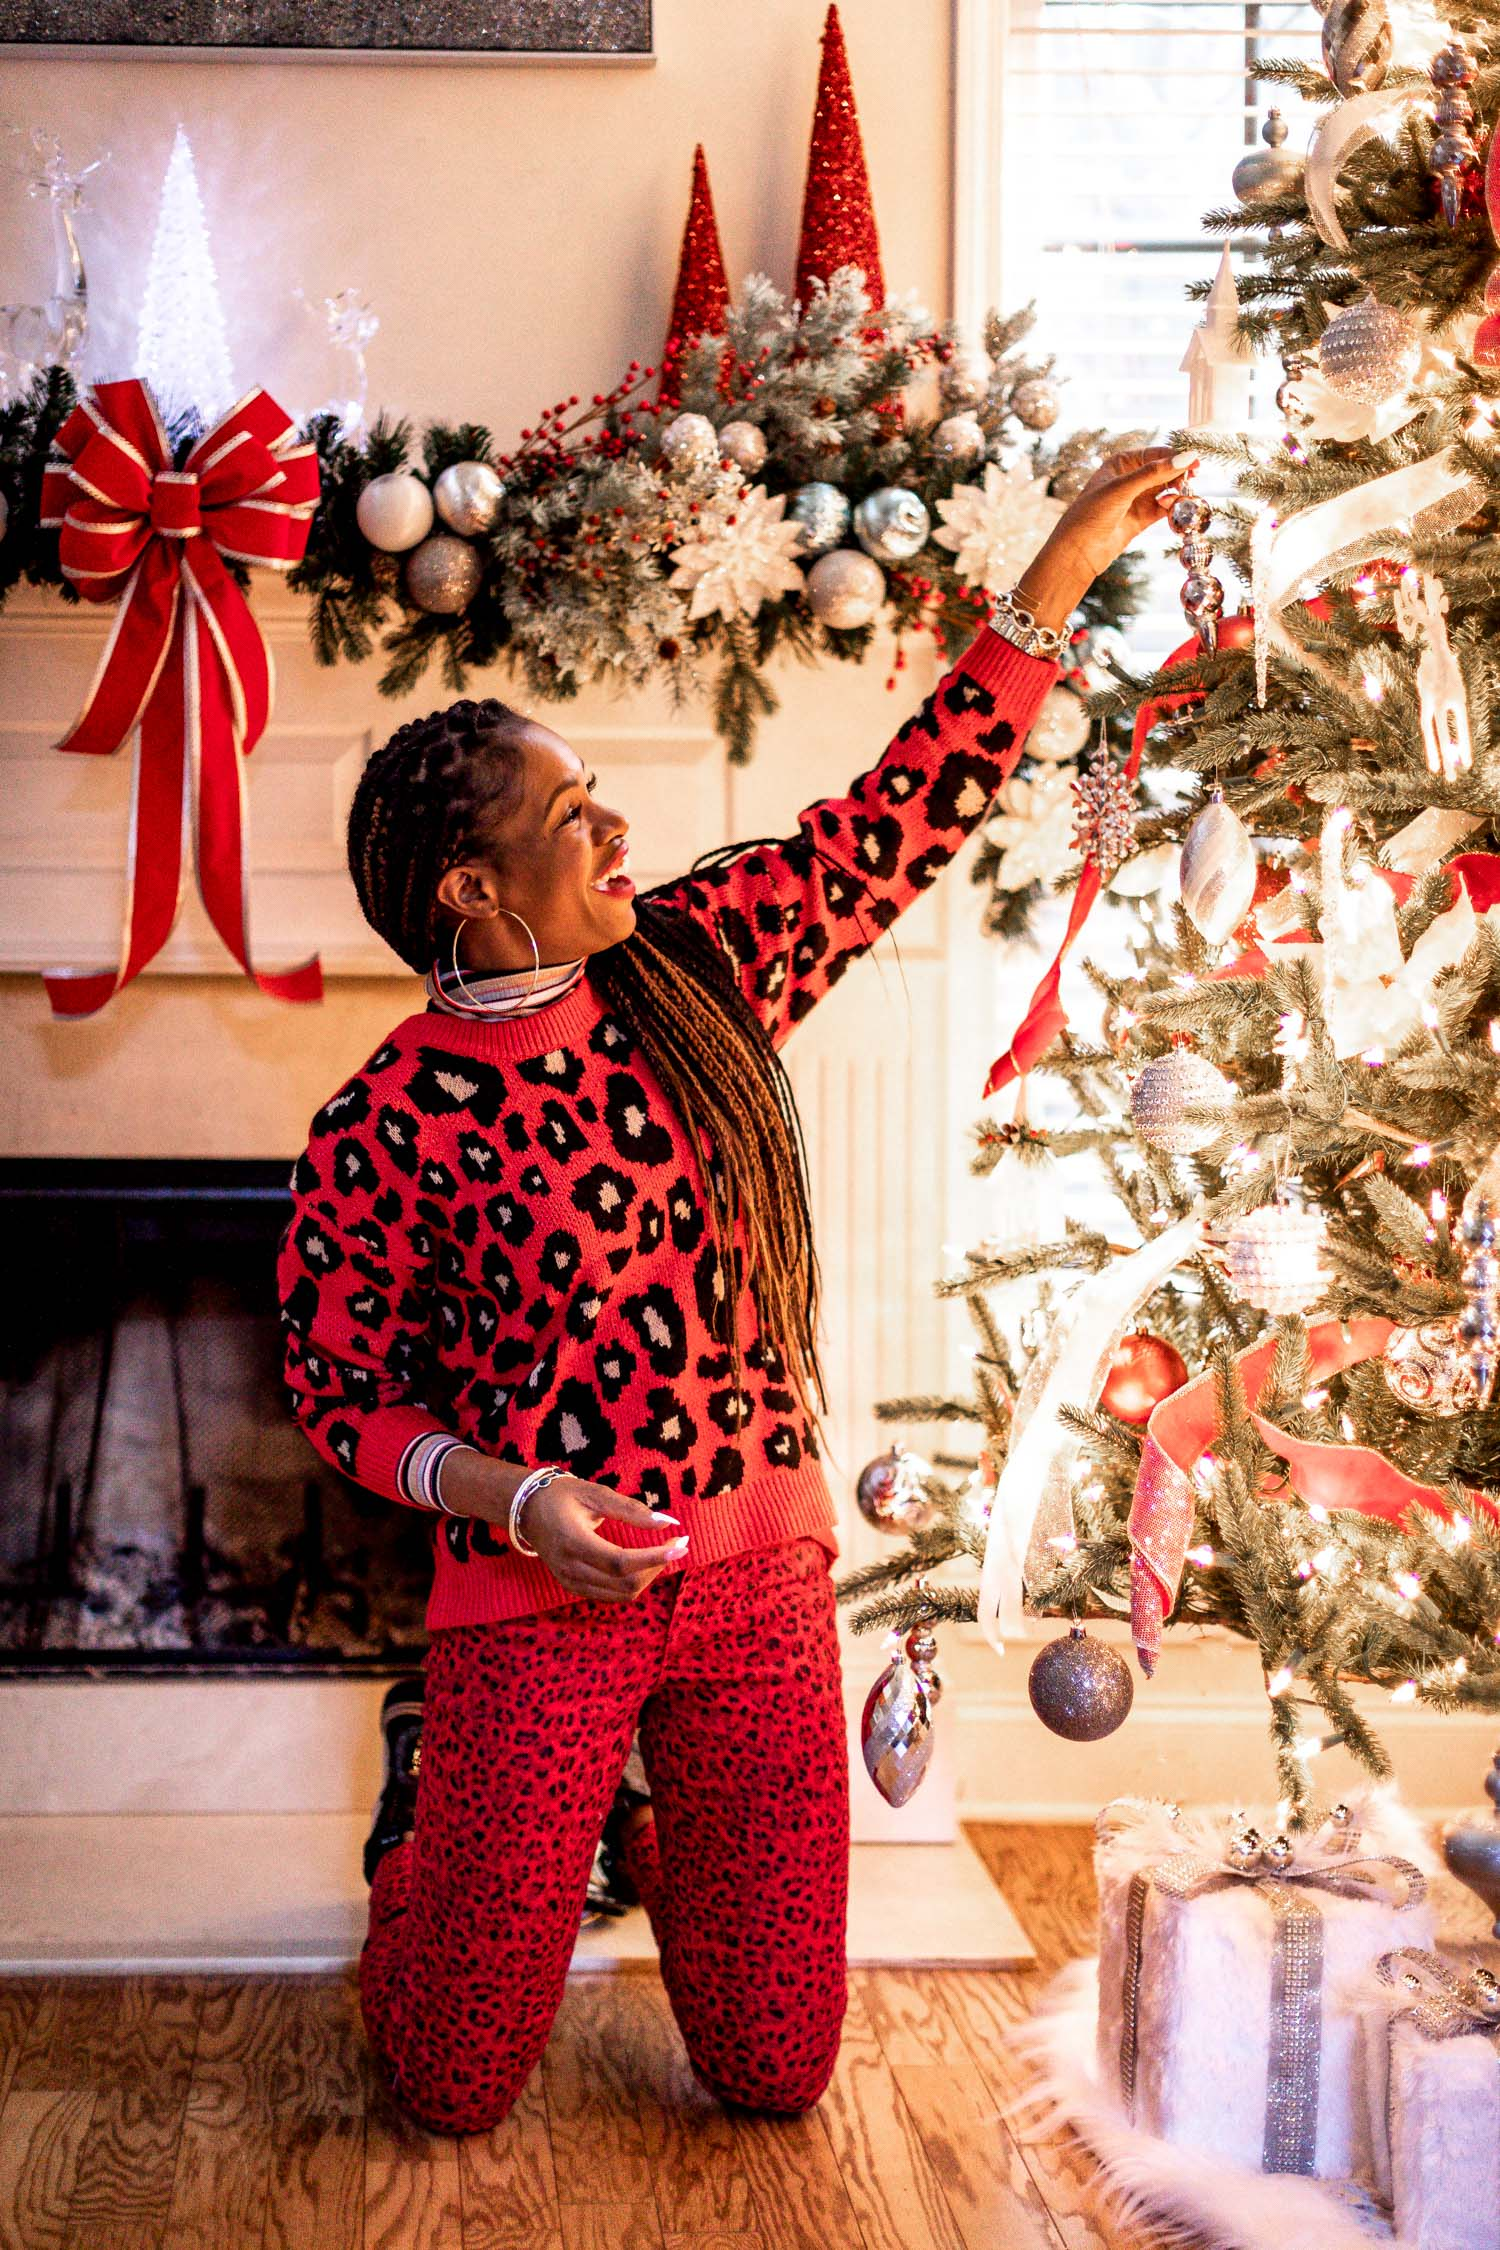 how to wear red during the holidays, how to wear red without being too christmasy, stylish ways to wear red during the holidays, how to style a red christmas sweater, top atlanta blogger decorates christmas tree wearing scoop from walmart